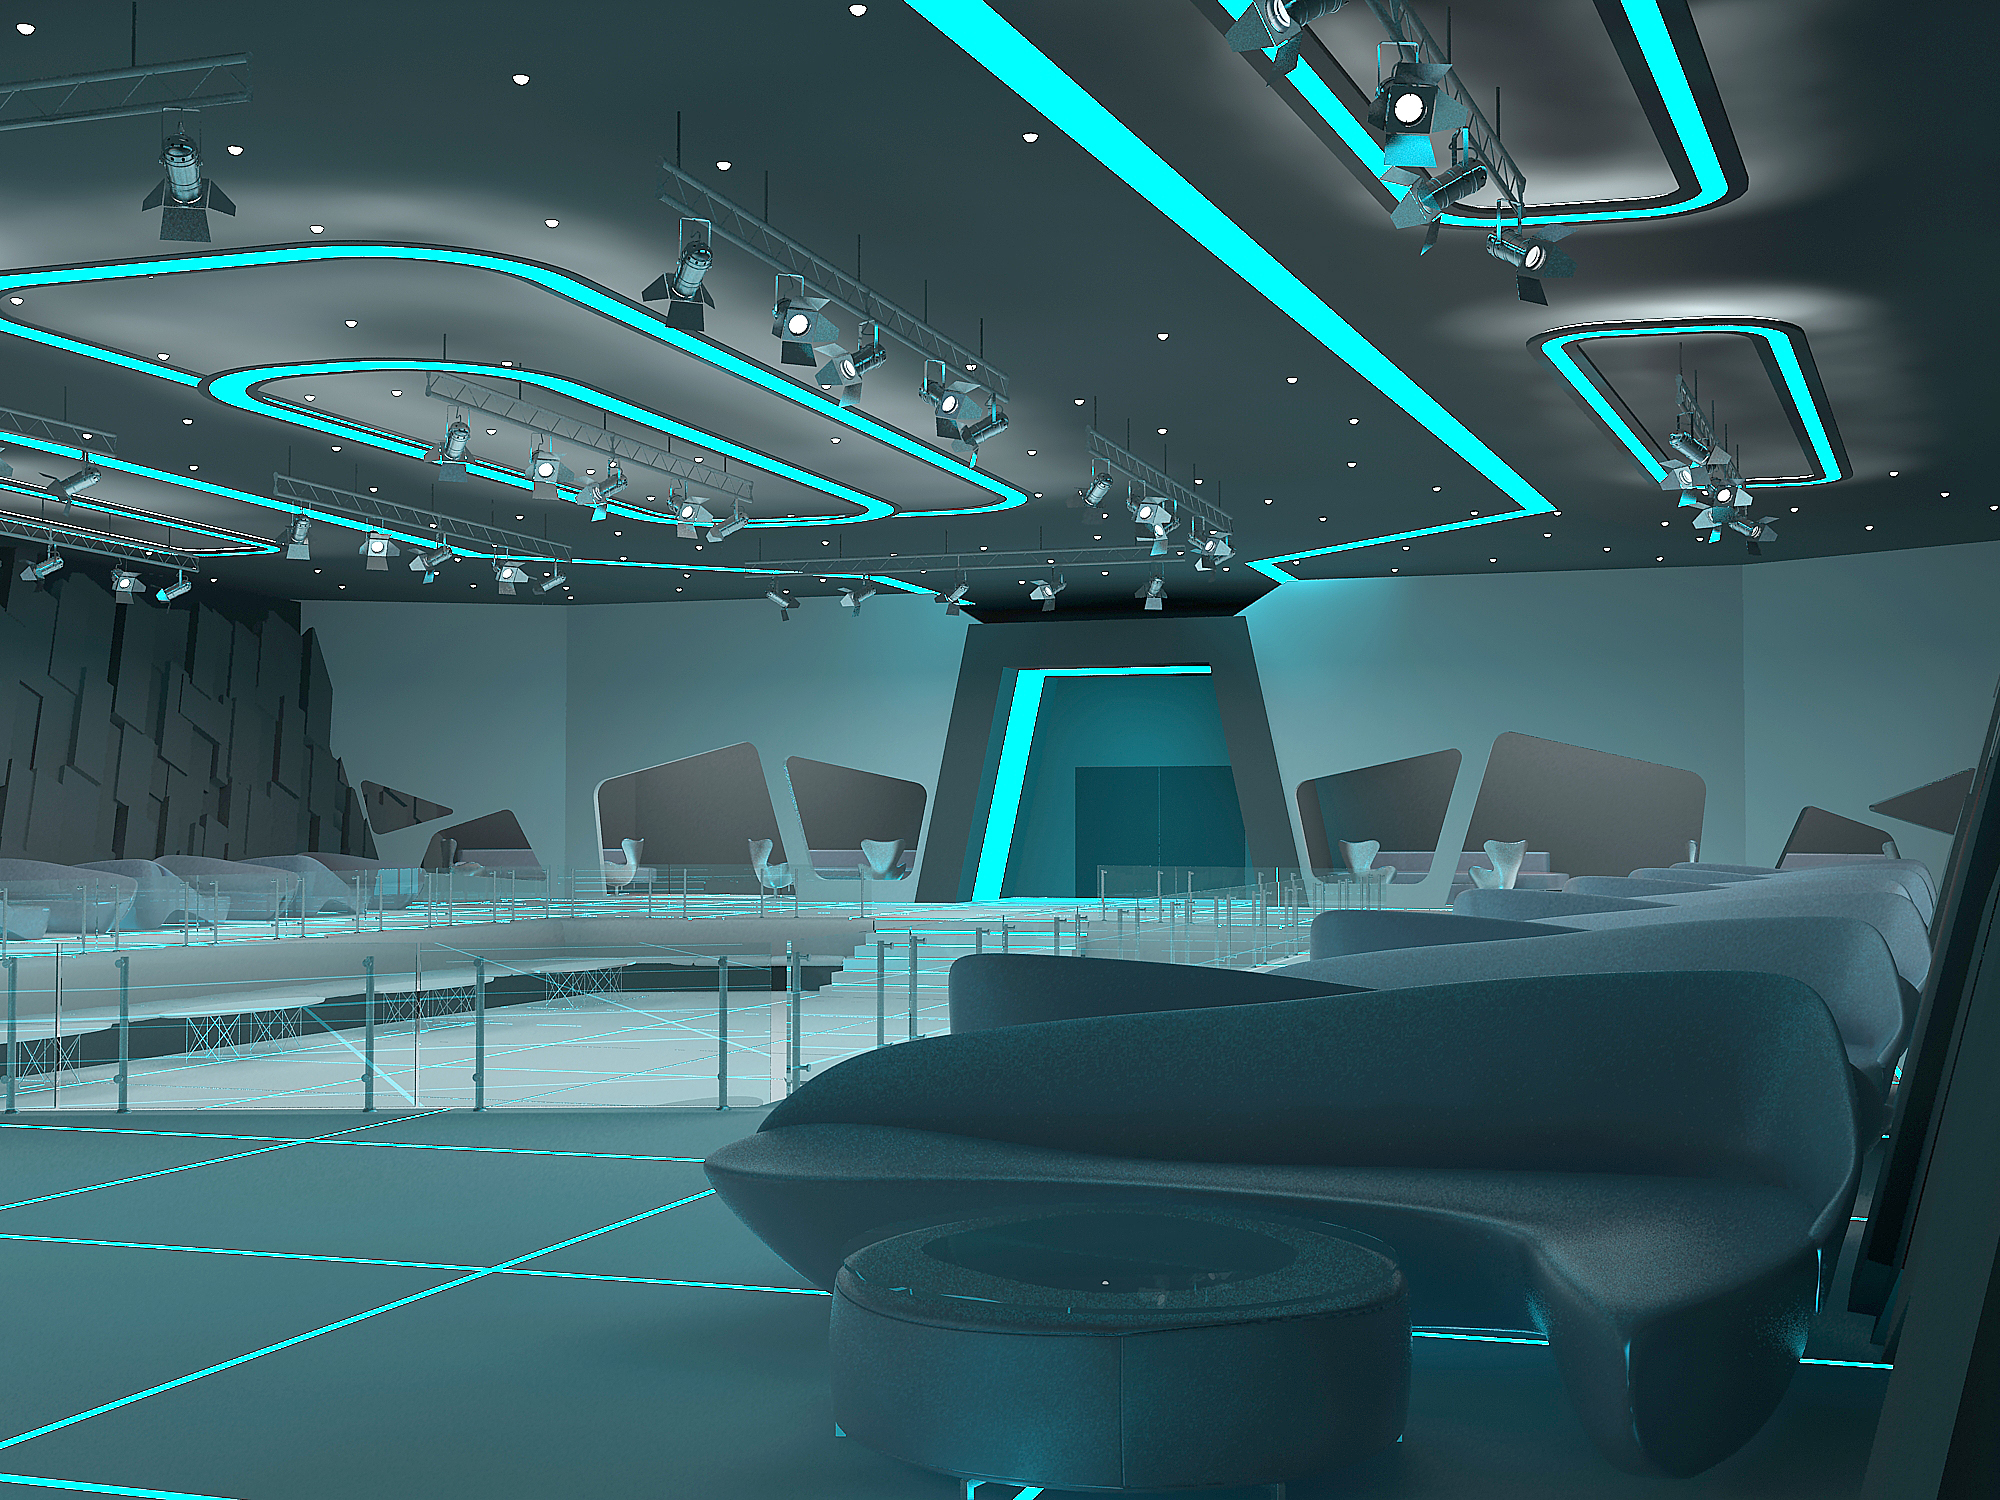 tron style club interior with aleksandra gromova by nikita voronov at